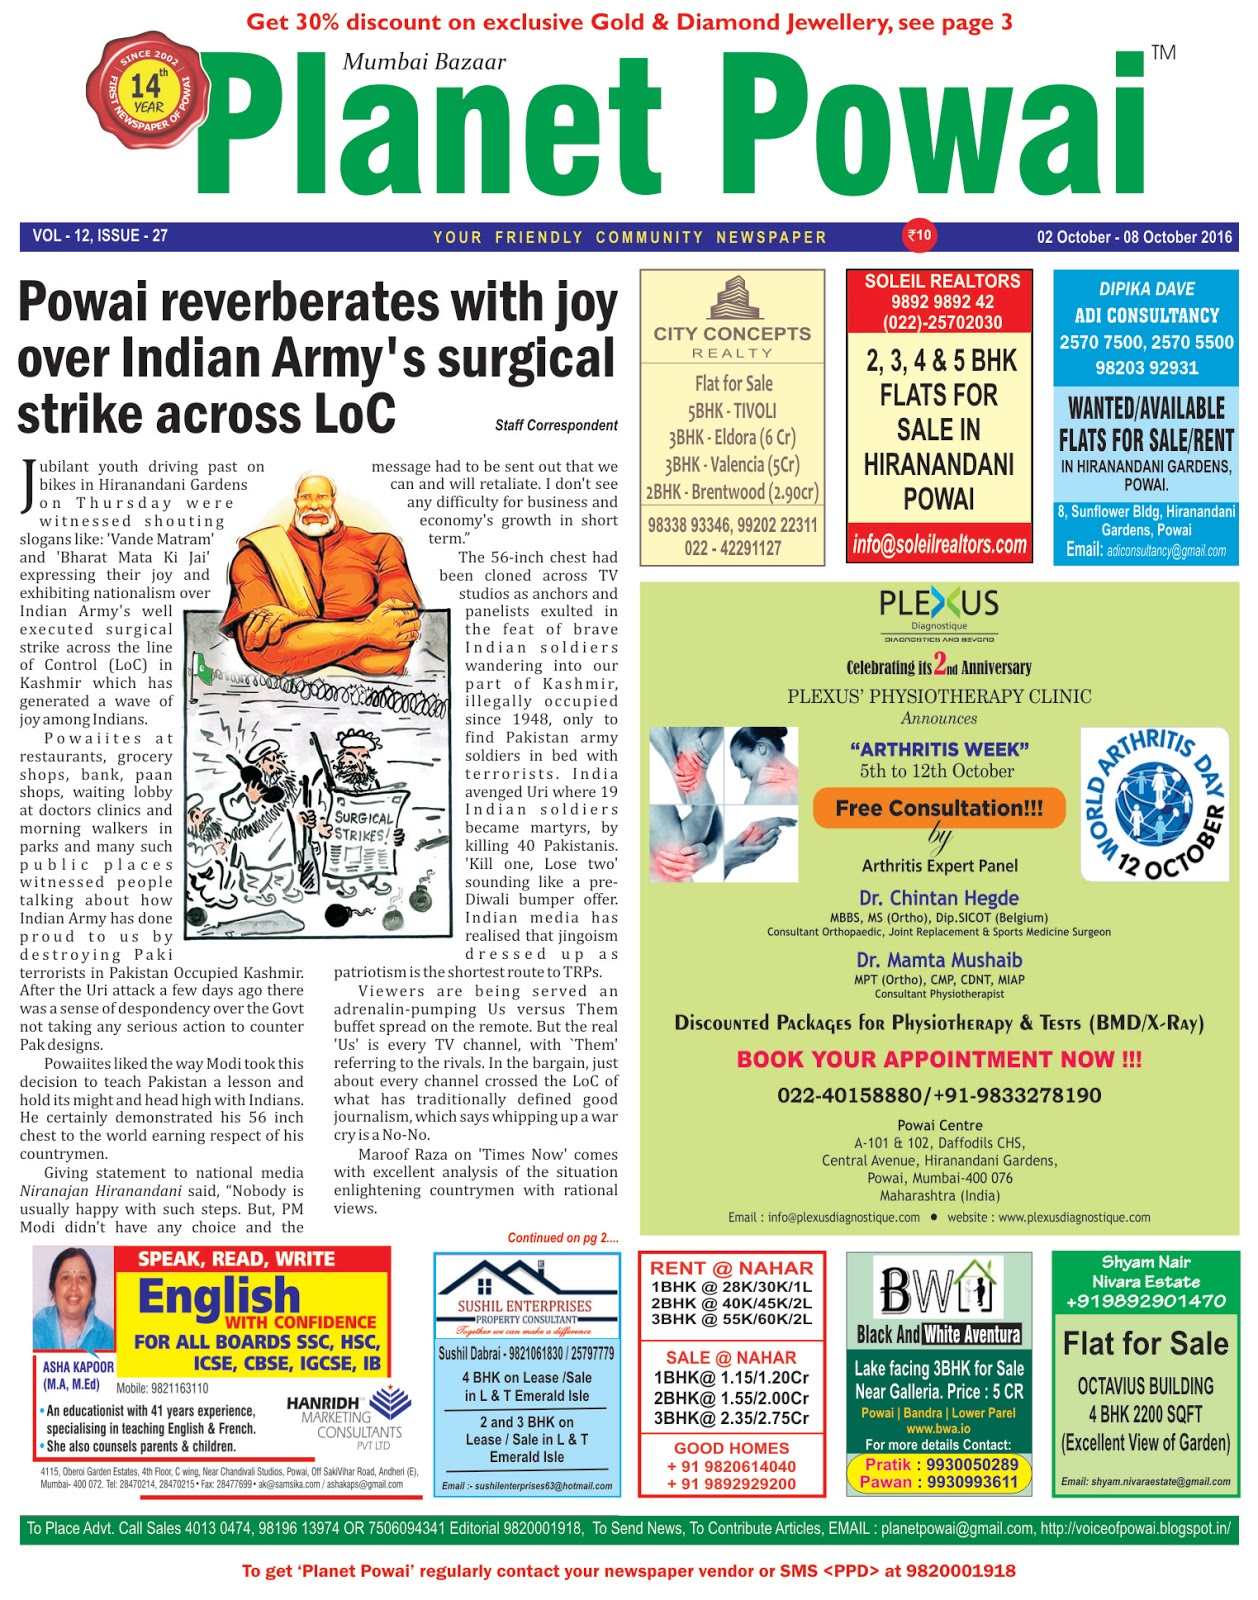 PLANET POWAI 02nd October 2016 (Vol 12 Issue 27) | PLANET